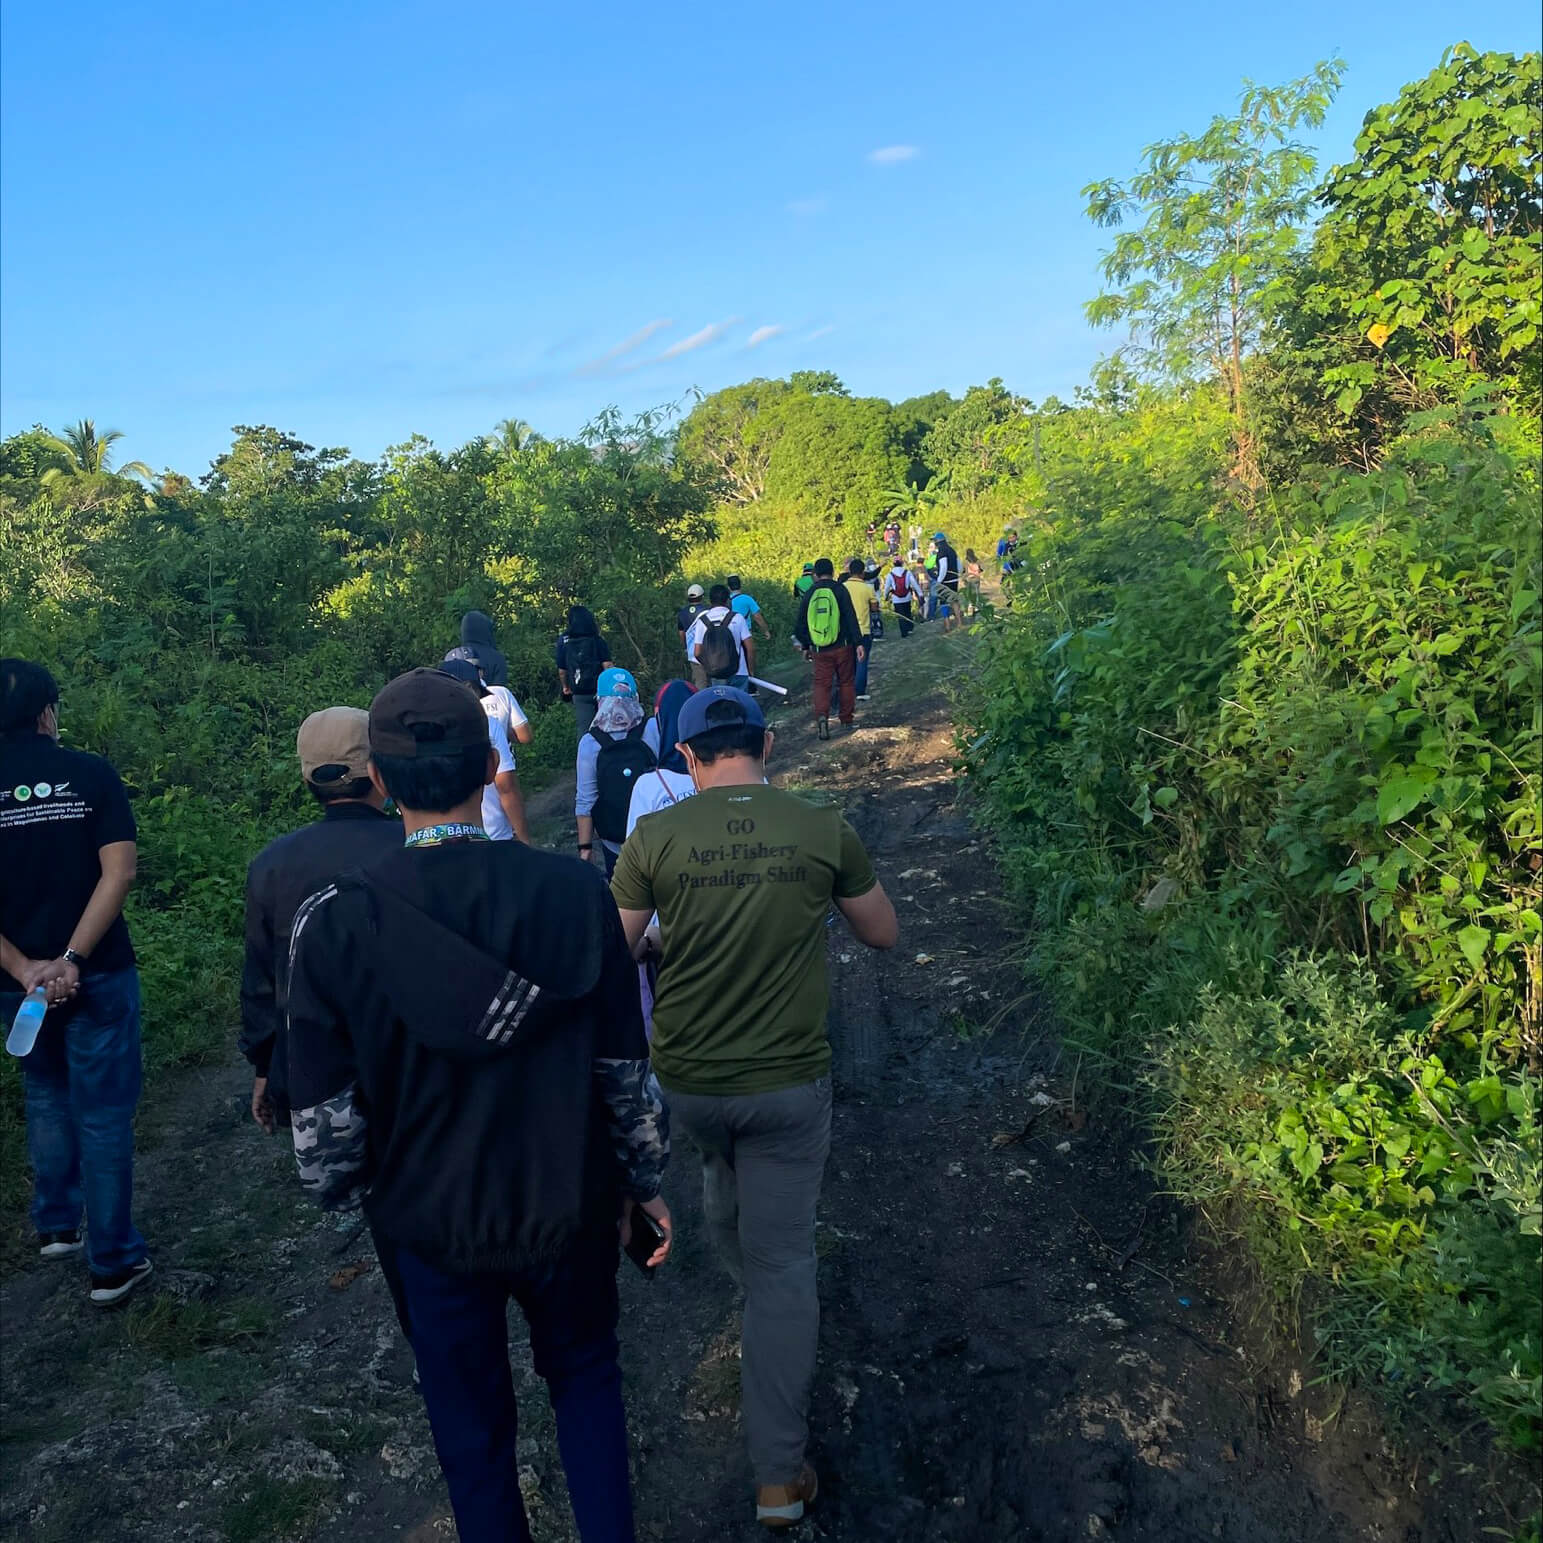 Individuals trekking a muddy dirt road, following a disorganized line.. Around them are green trees and bright blue sky.